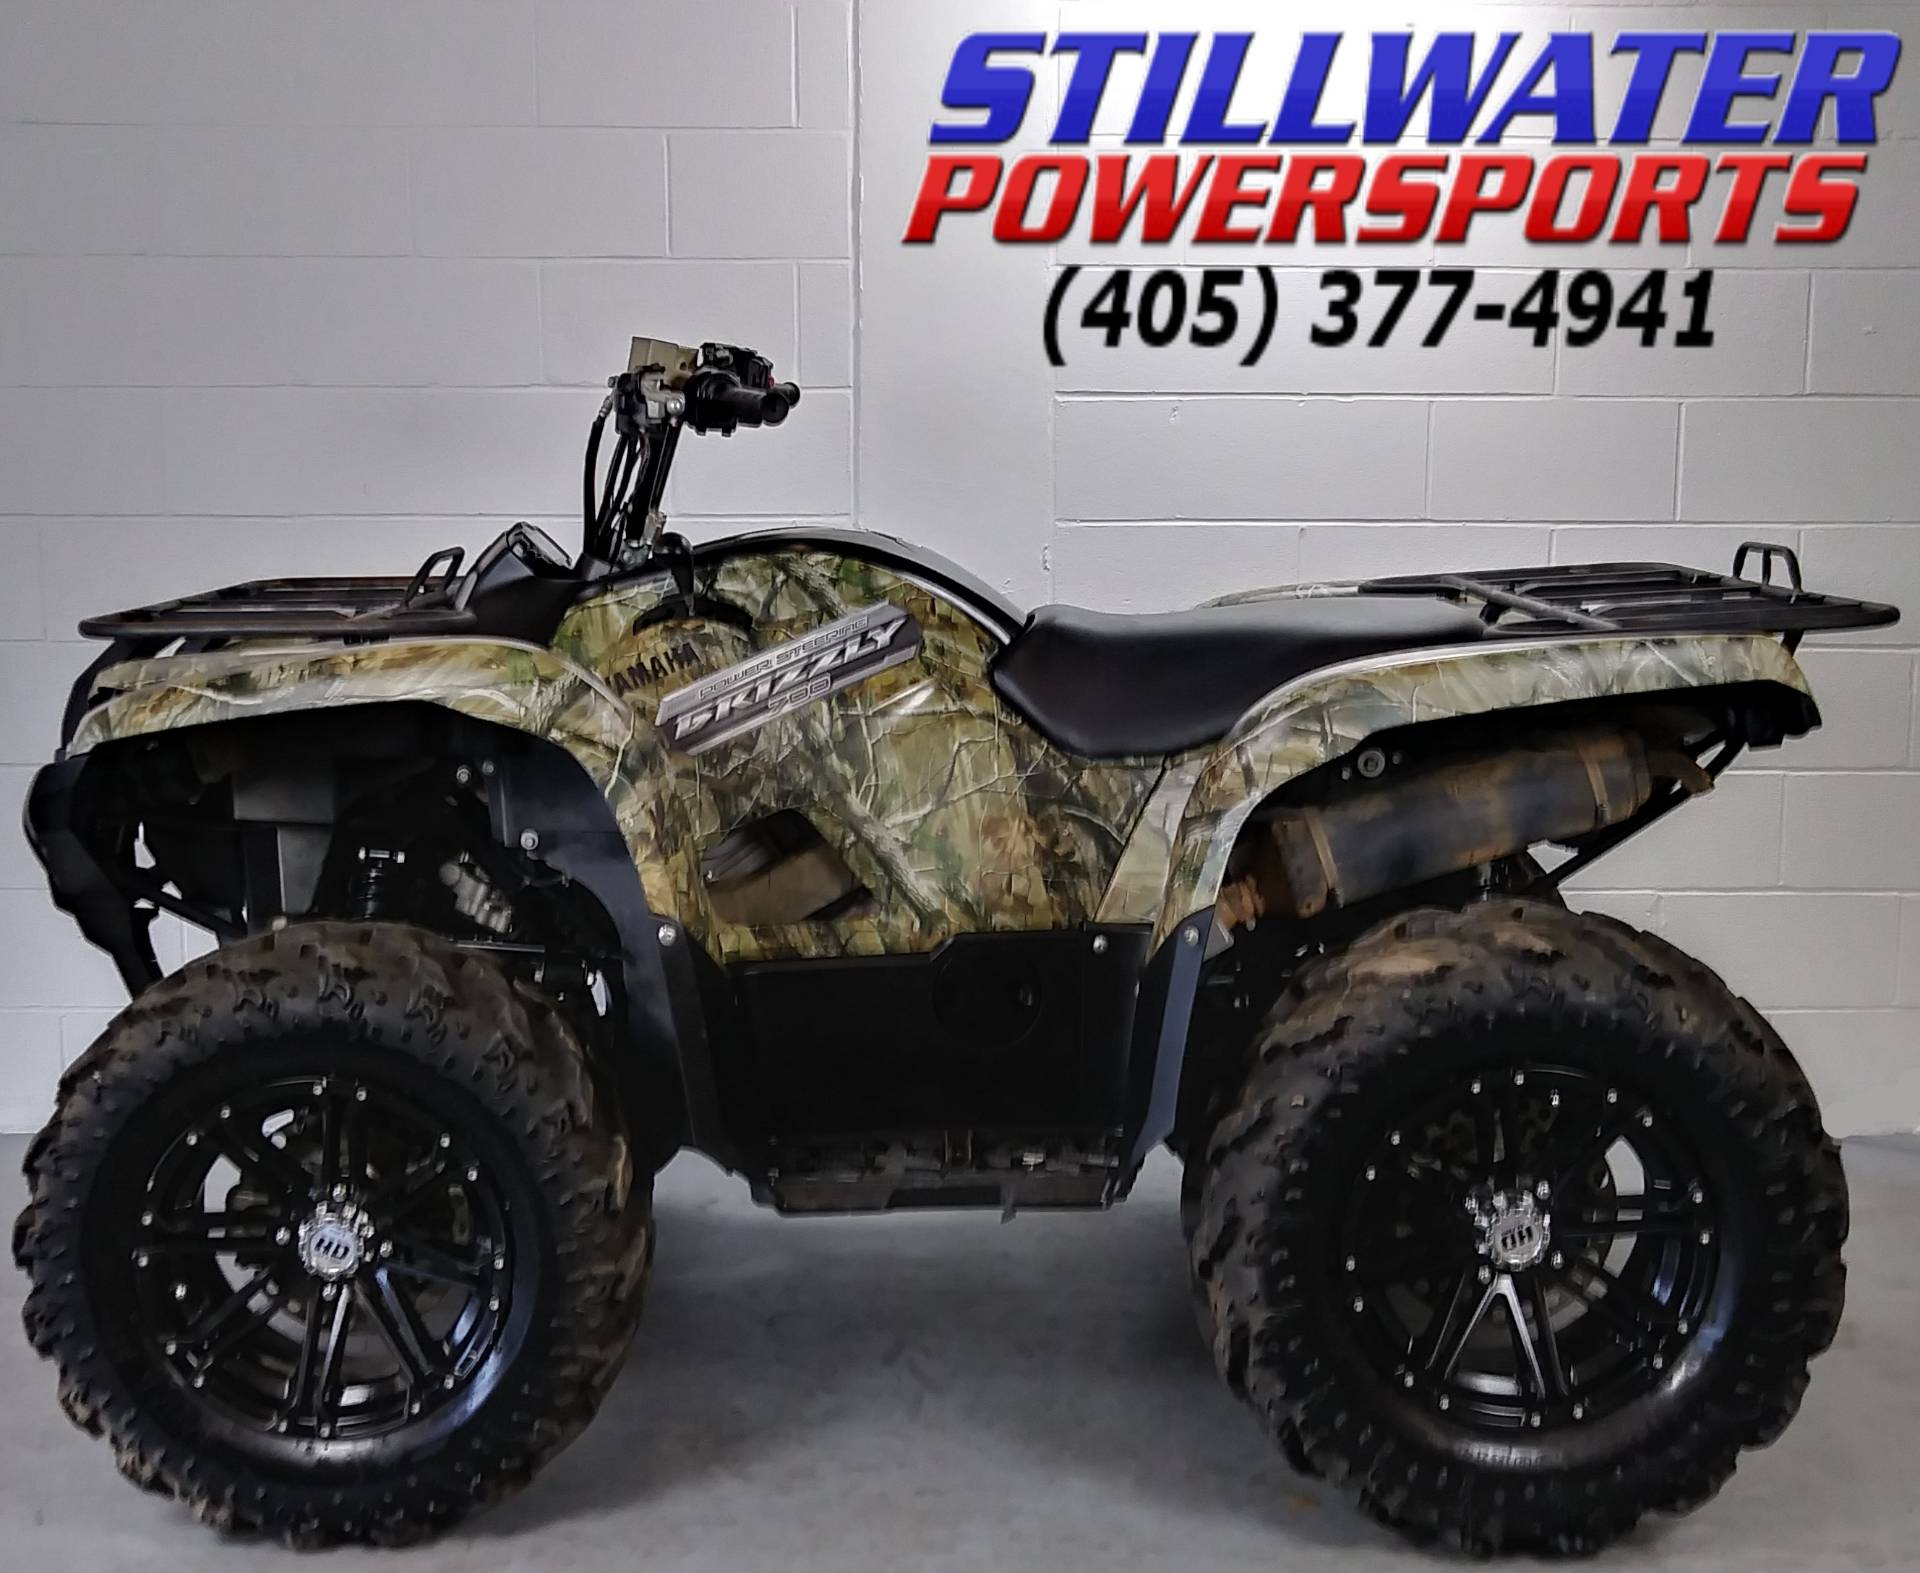 hight resolution of 2013 yamaha grizzly 700 fi auto 4x4 eps in stillwater oklahoma photo 6